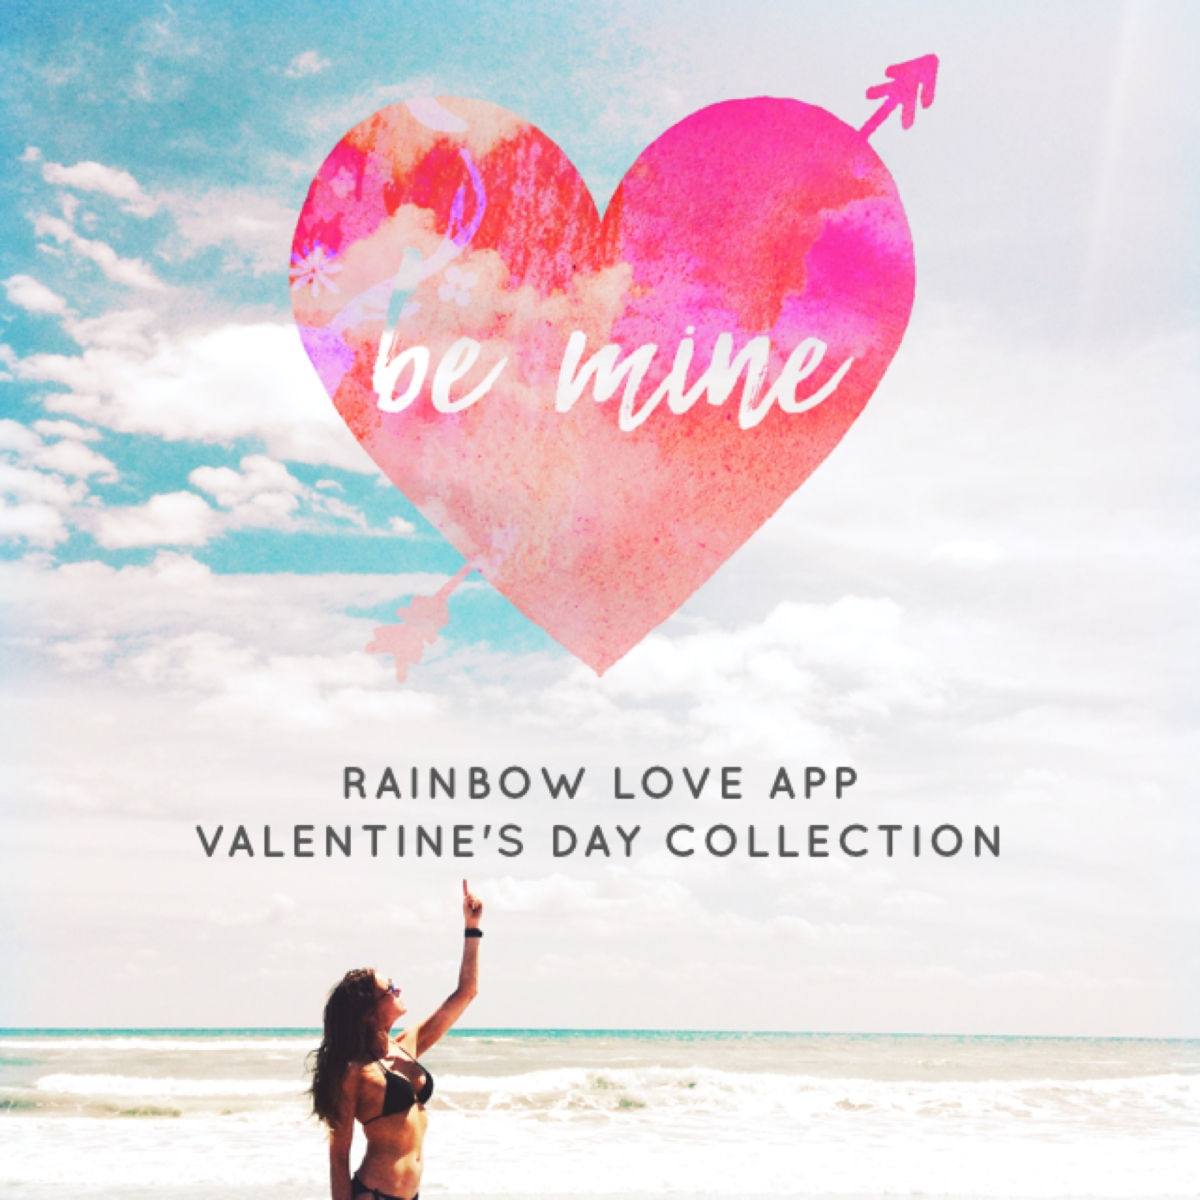 rainbow-love-app-valentines-day-photo-art-and-filters-make-a-rainbow-love-valentine-day-card-10